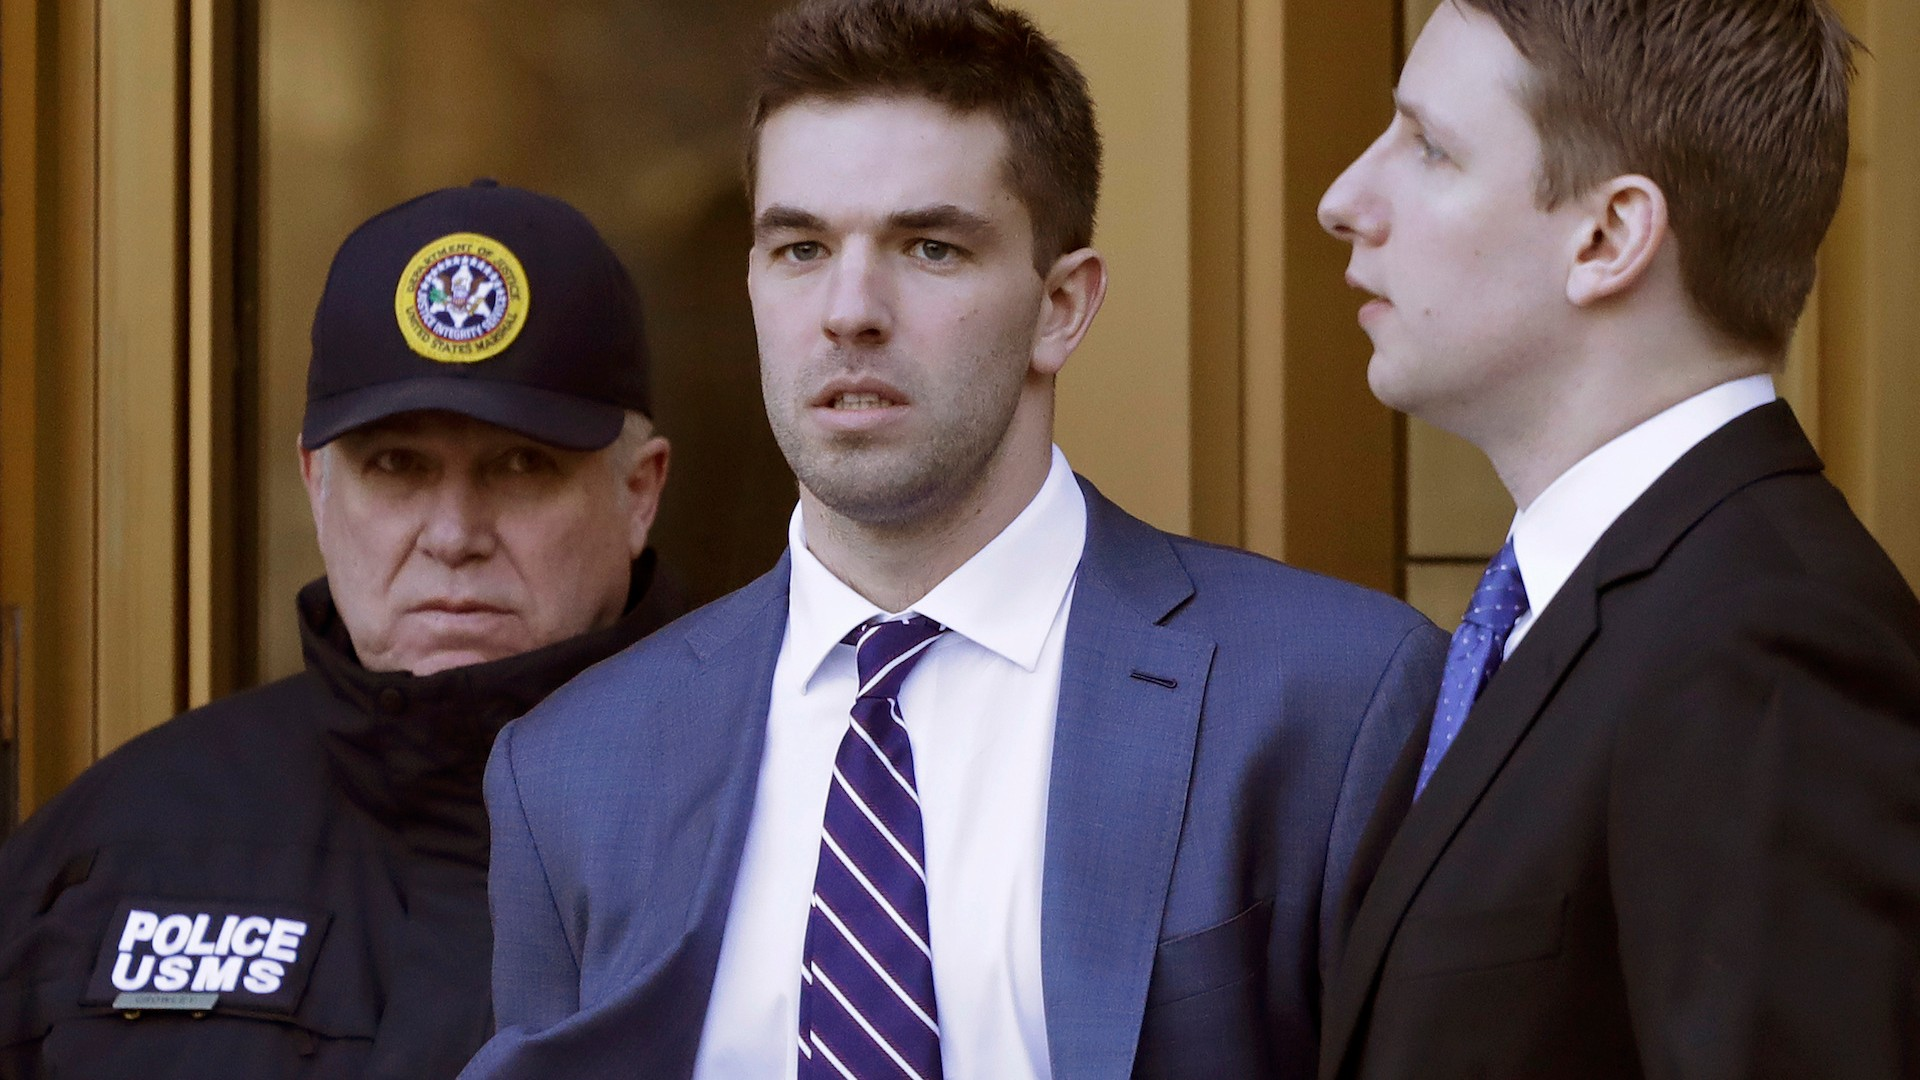 BREAKING: Fyre Festival scammer Billy McFarland sentenced to 6 years in prison